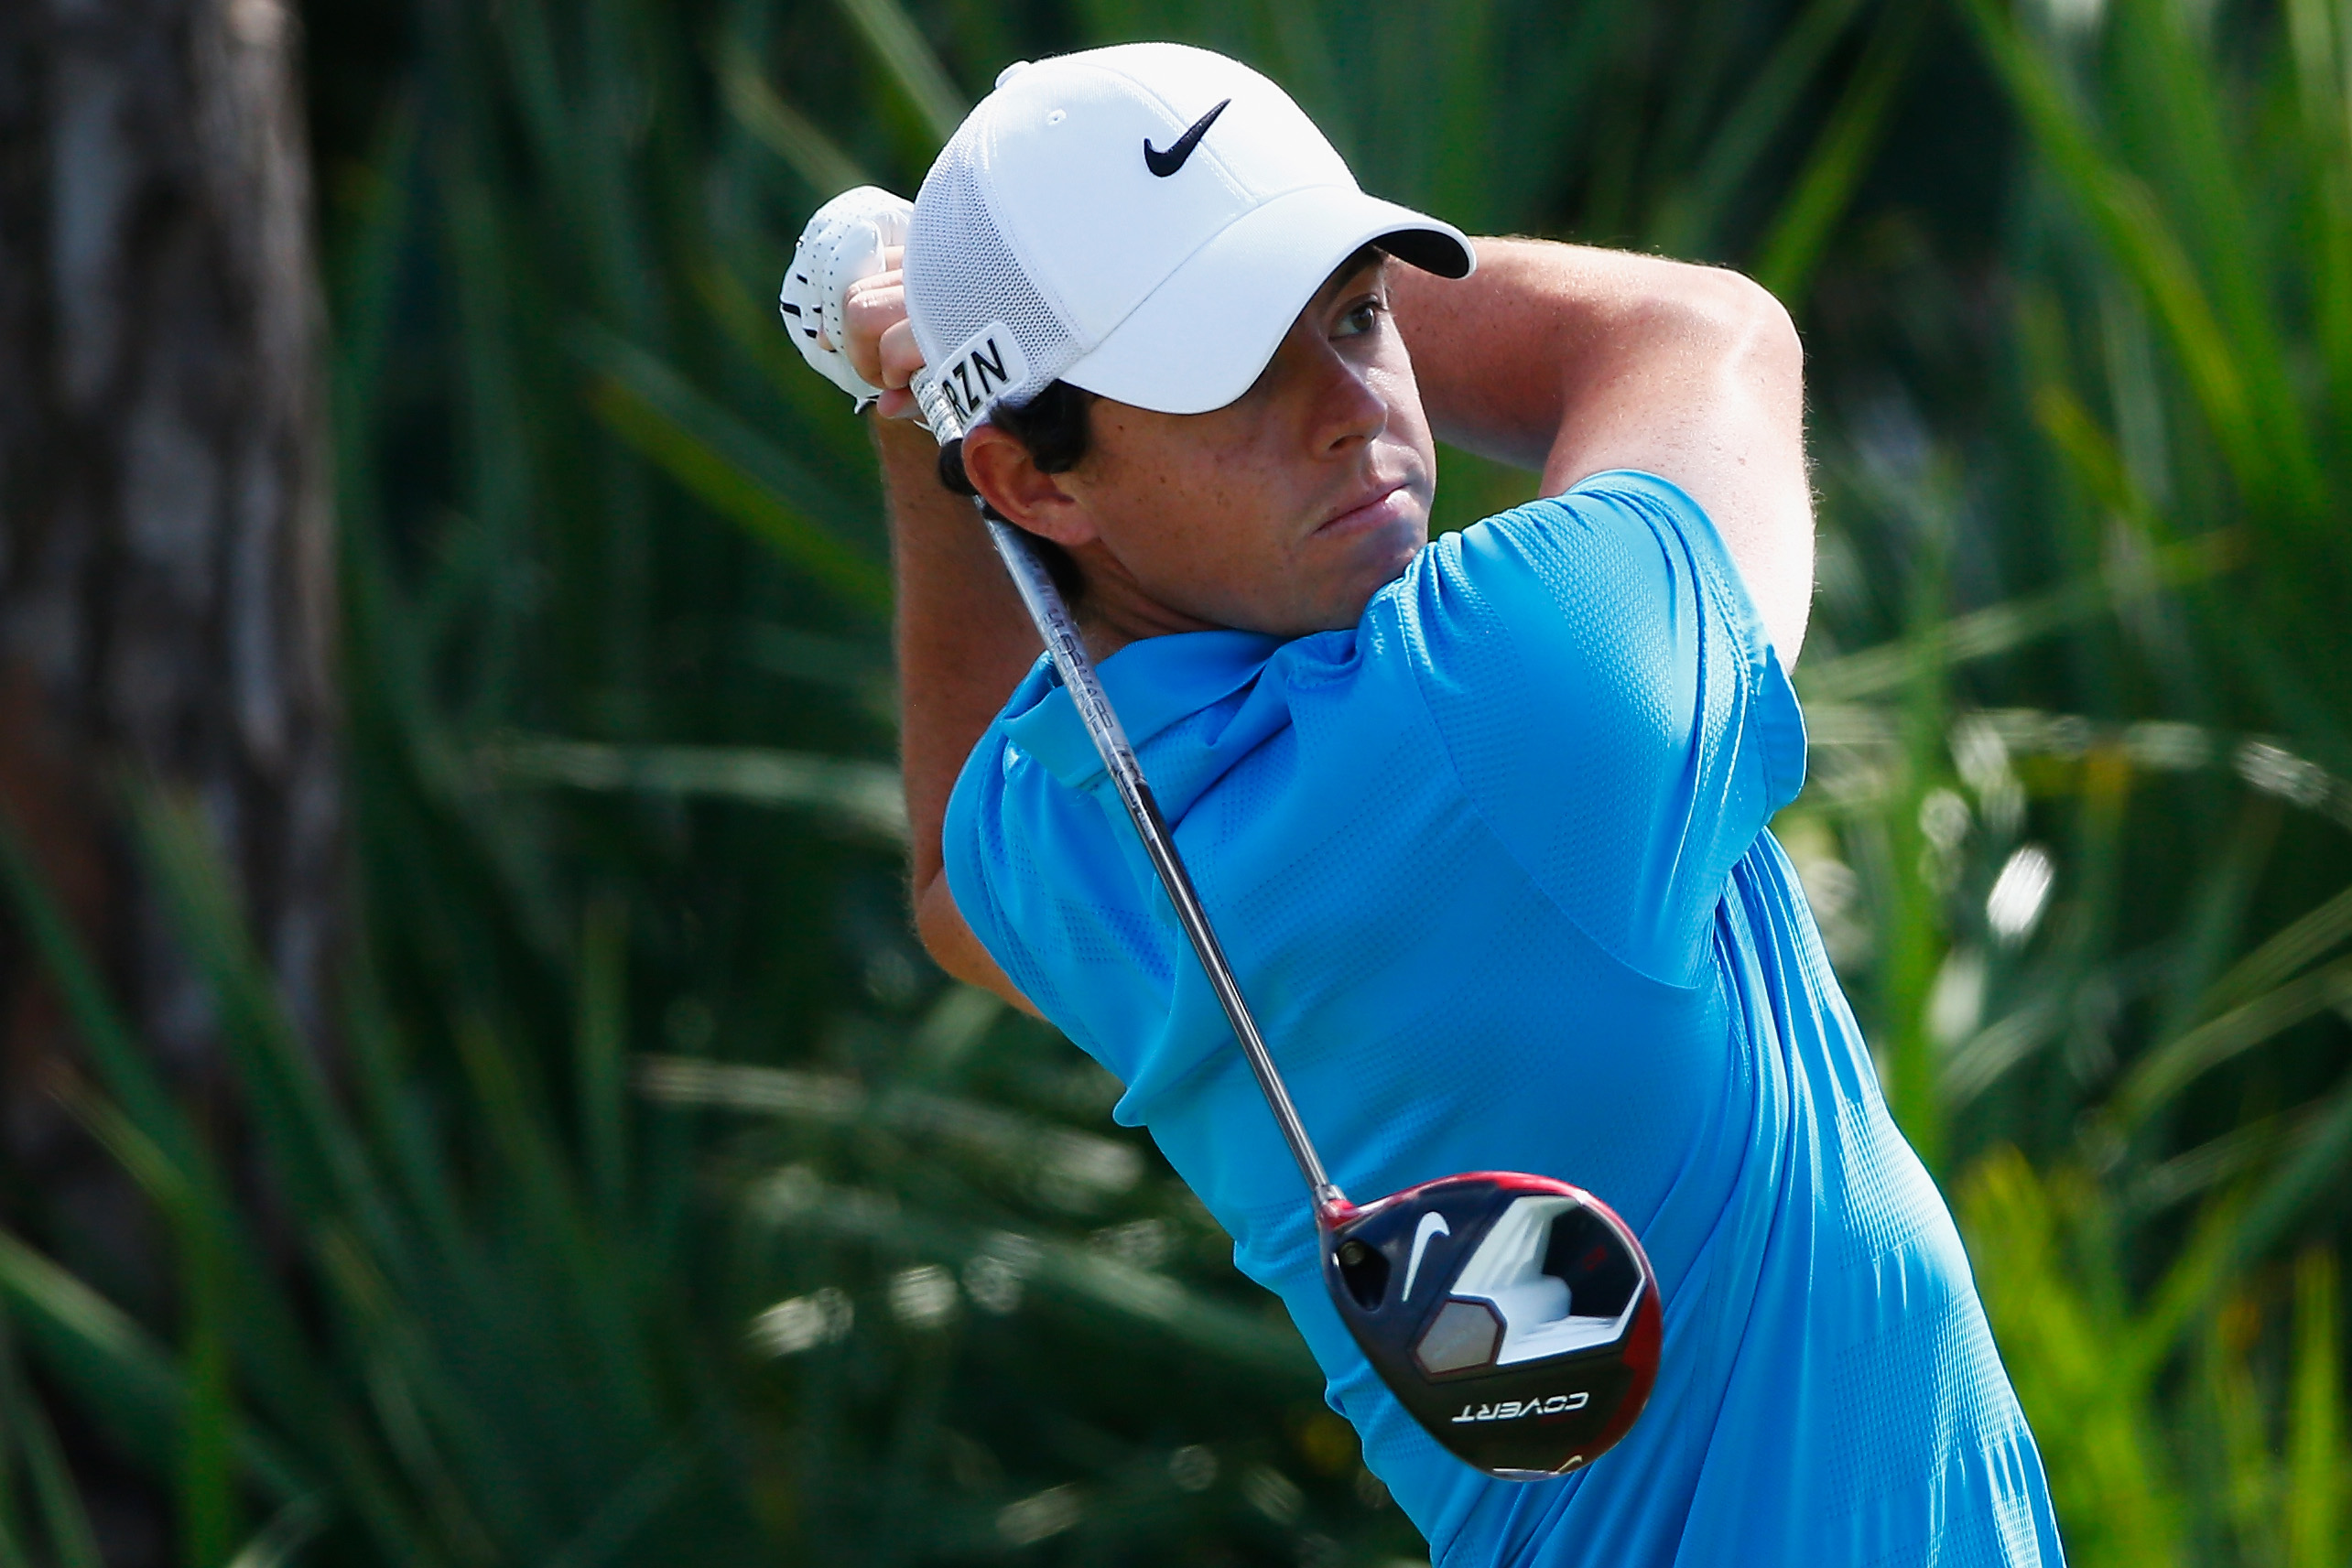 Rory McIlroy makes his '15 U.S. debut this week at the Honda, where he hopes to avenge last year's sudden-death defeat.